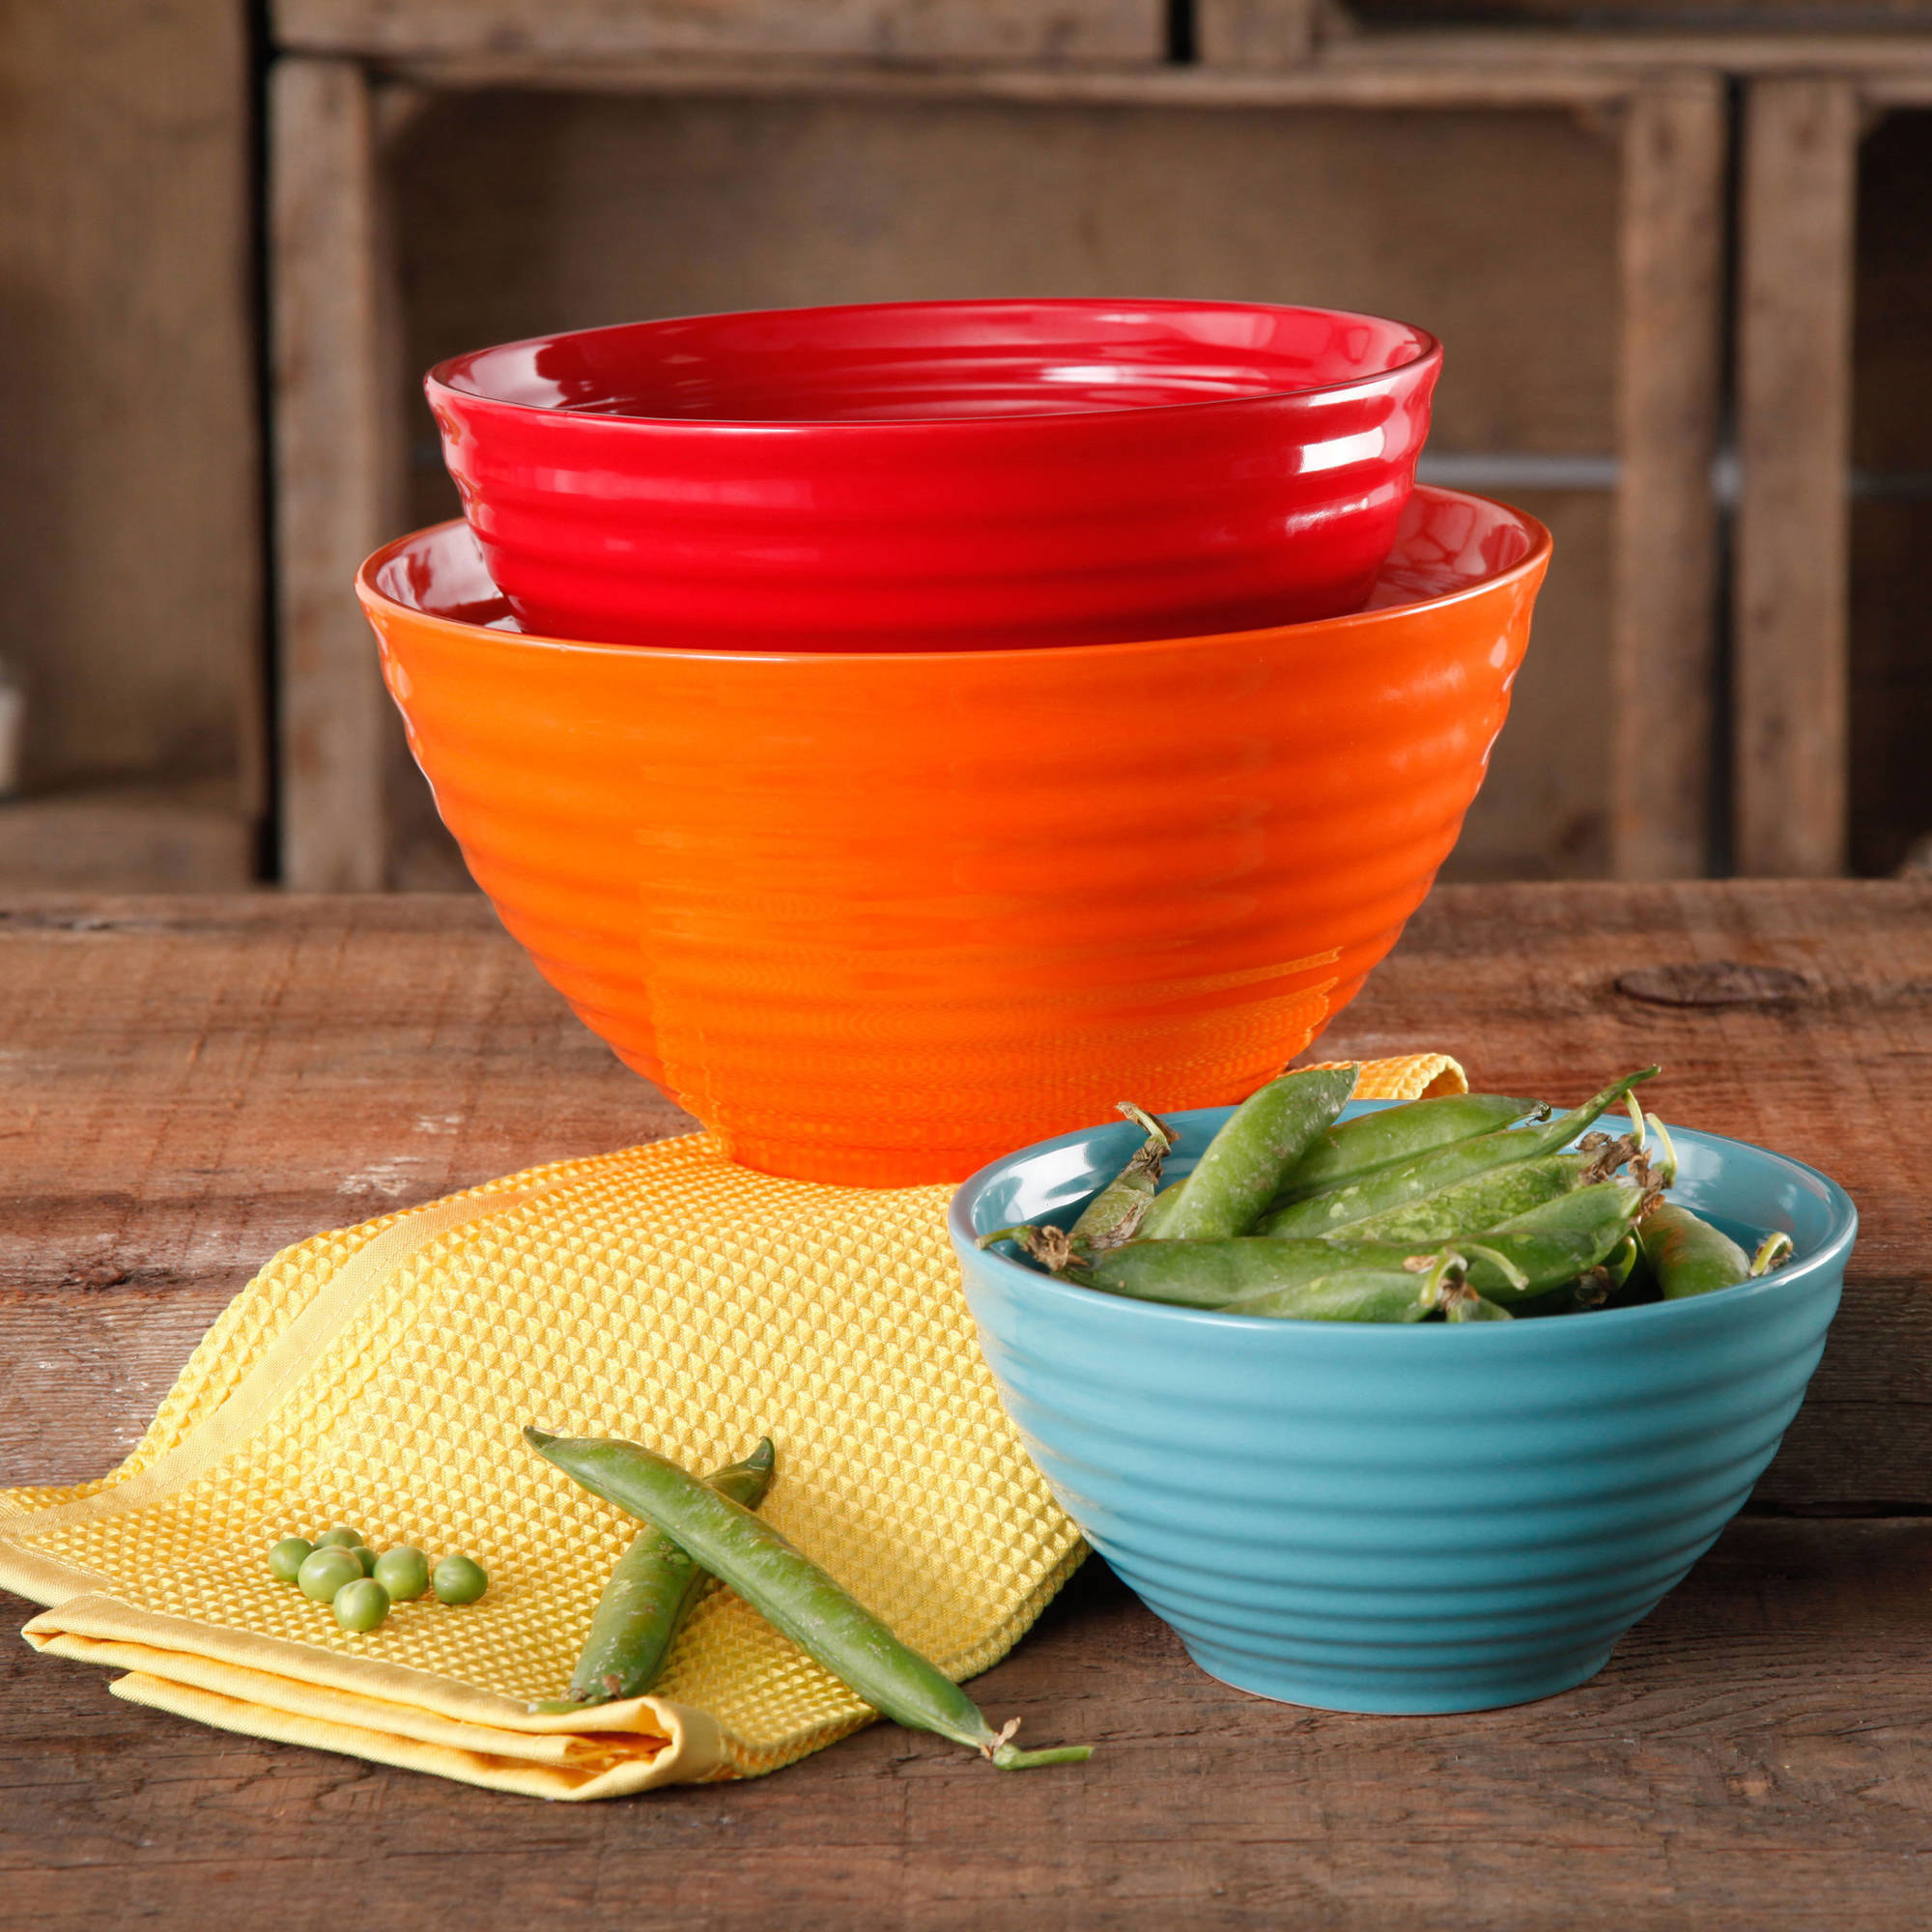 An orange and red ceramic bowl stacked, and a small ceramic bowl with snap peas inside